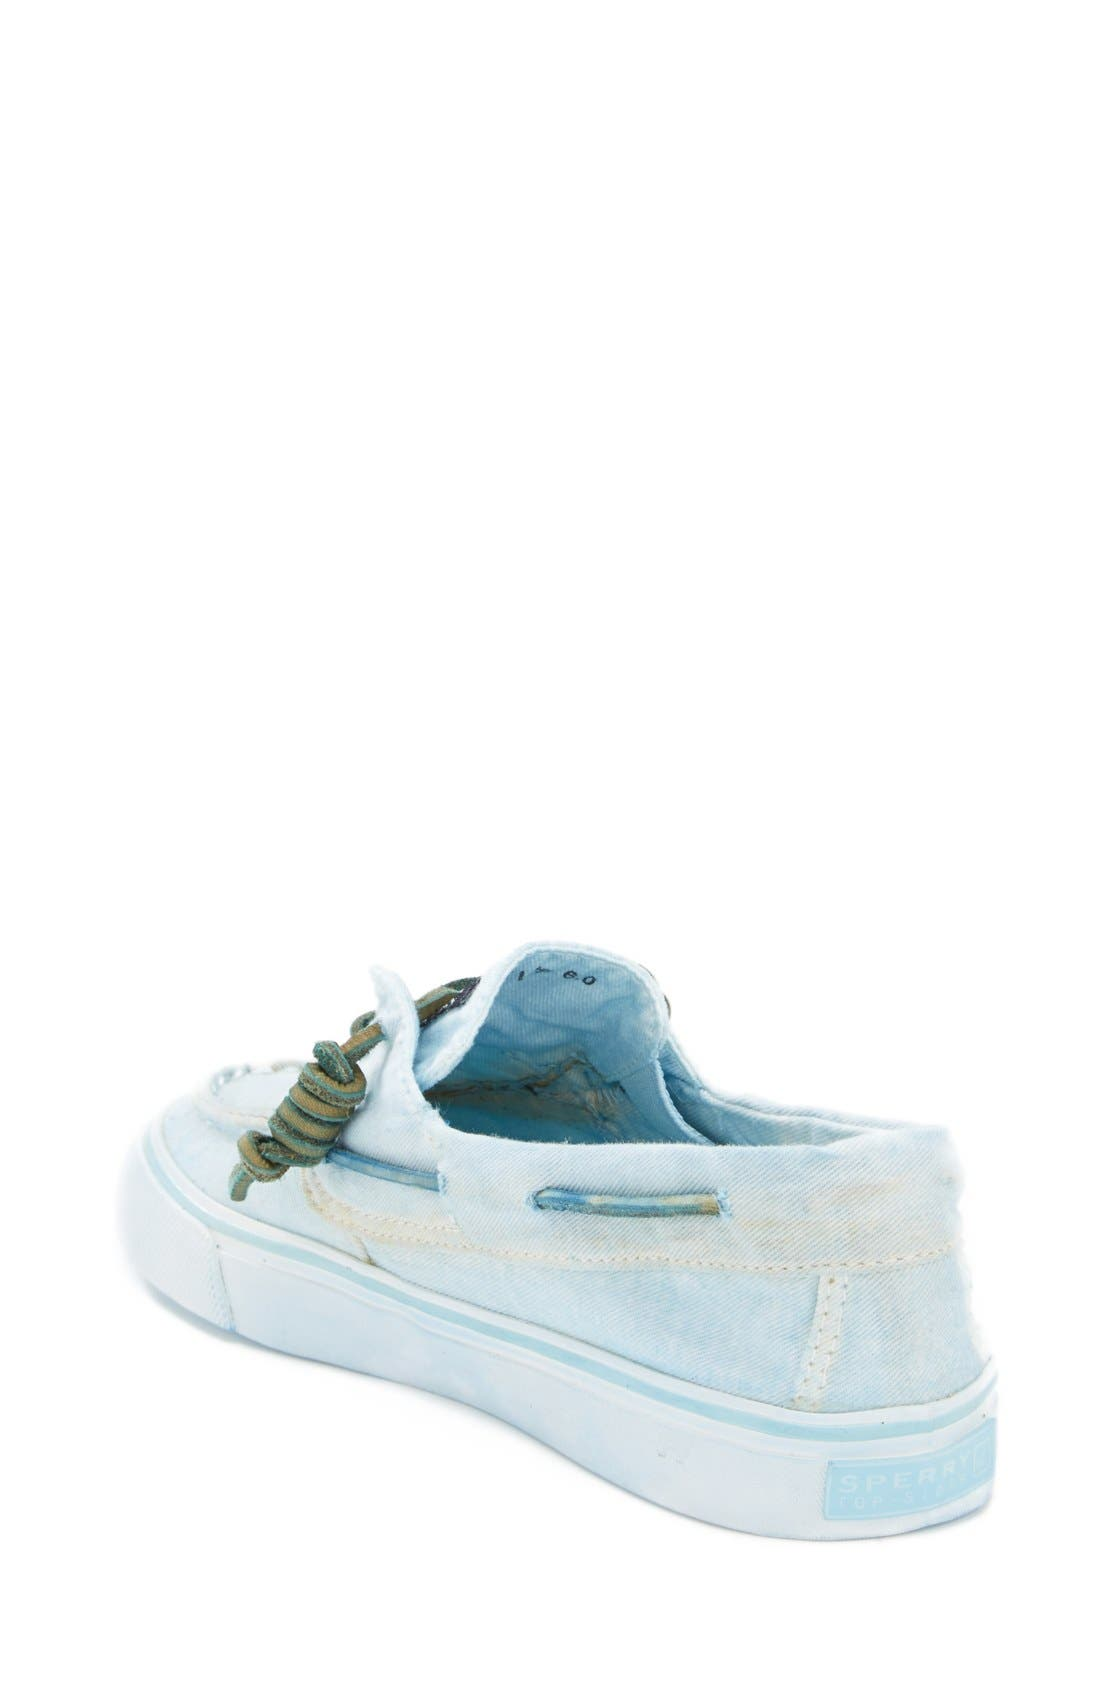 Top-Sider<sup>®</sup> 'Bahama' Sequined Boat Shoe,                             Alternate thumbnail 147, color,